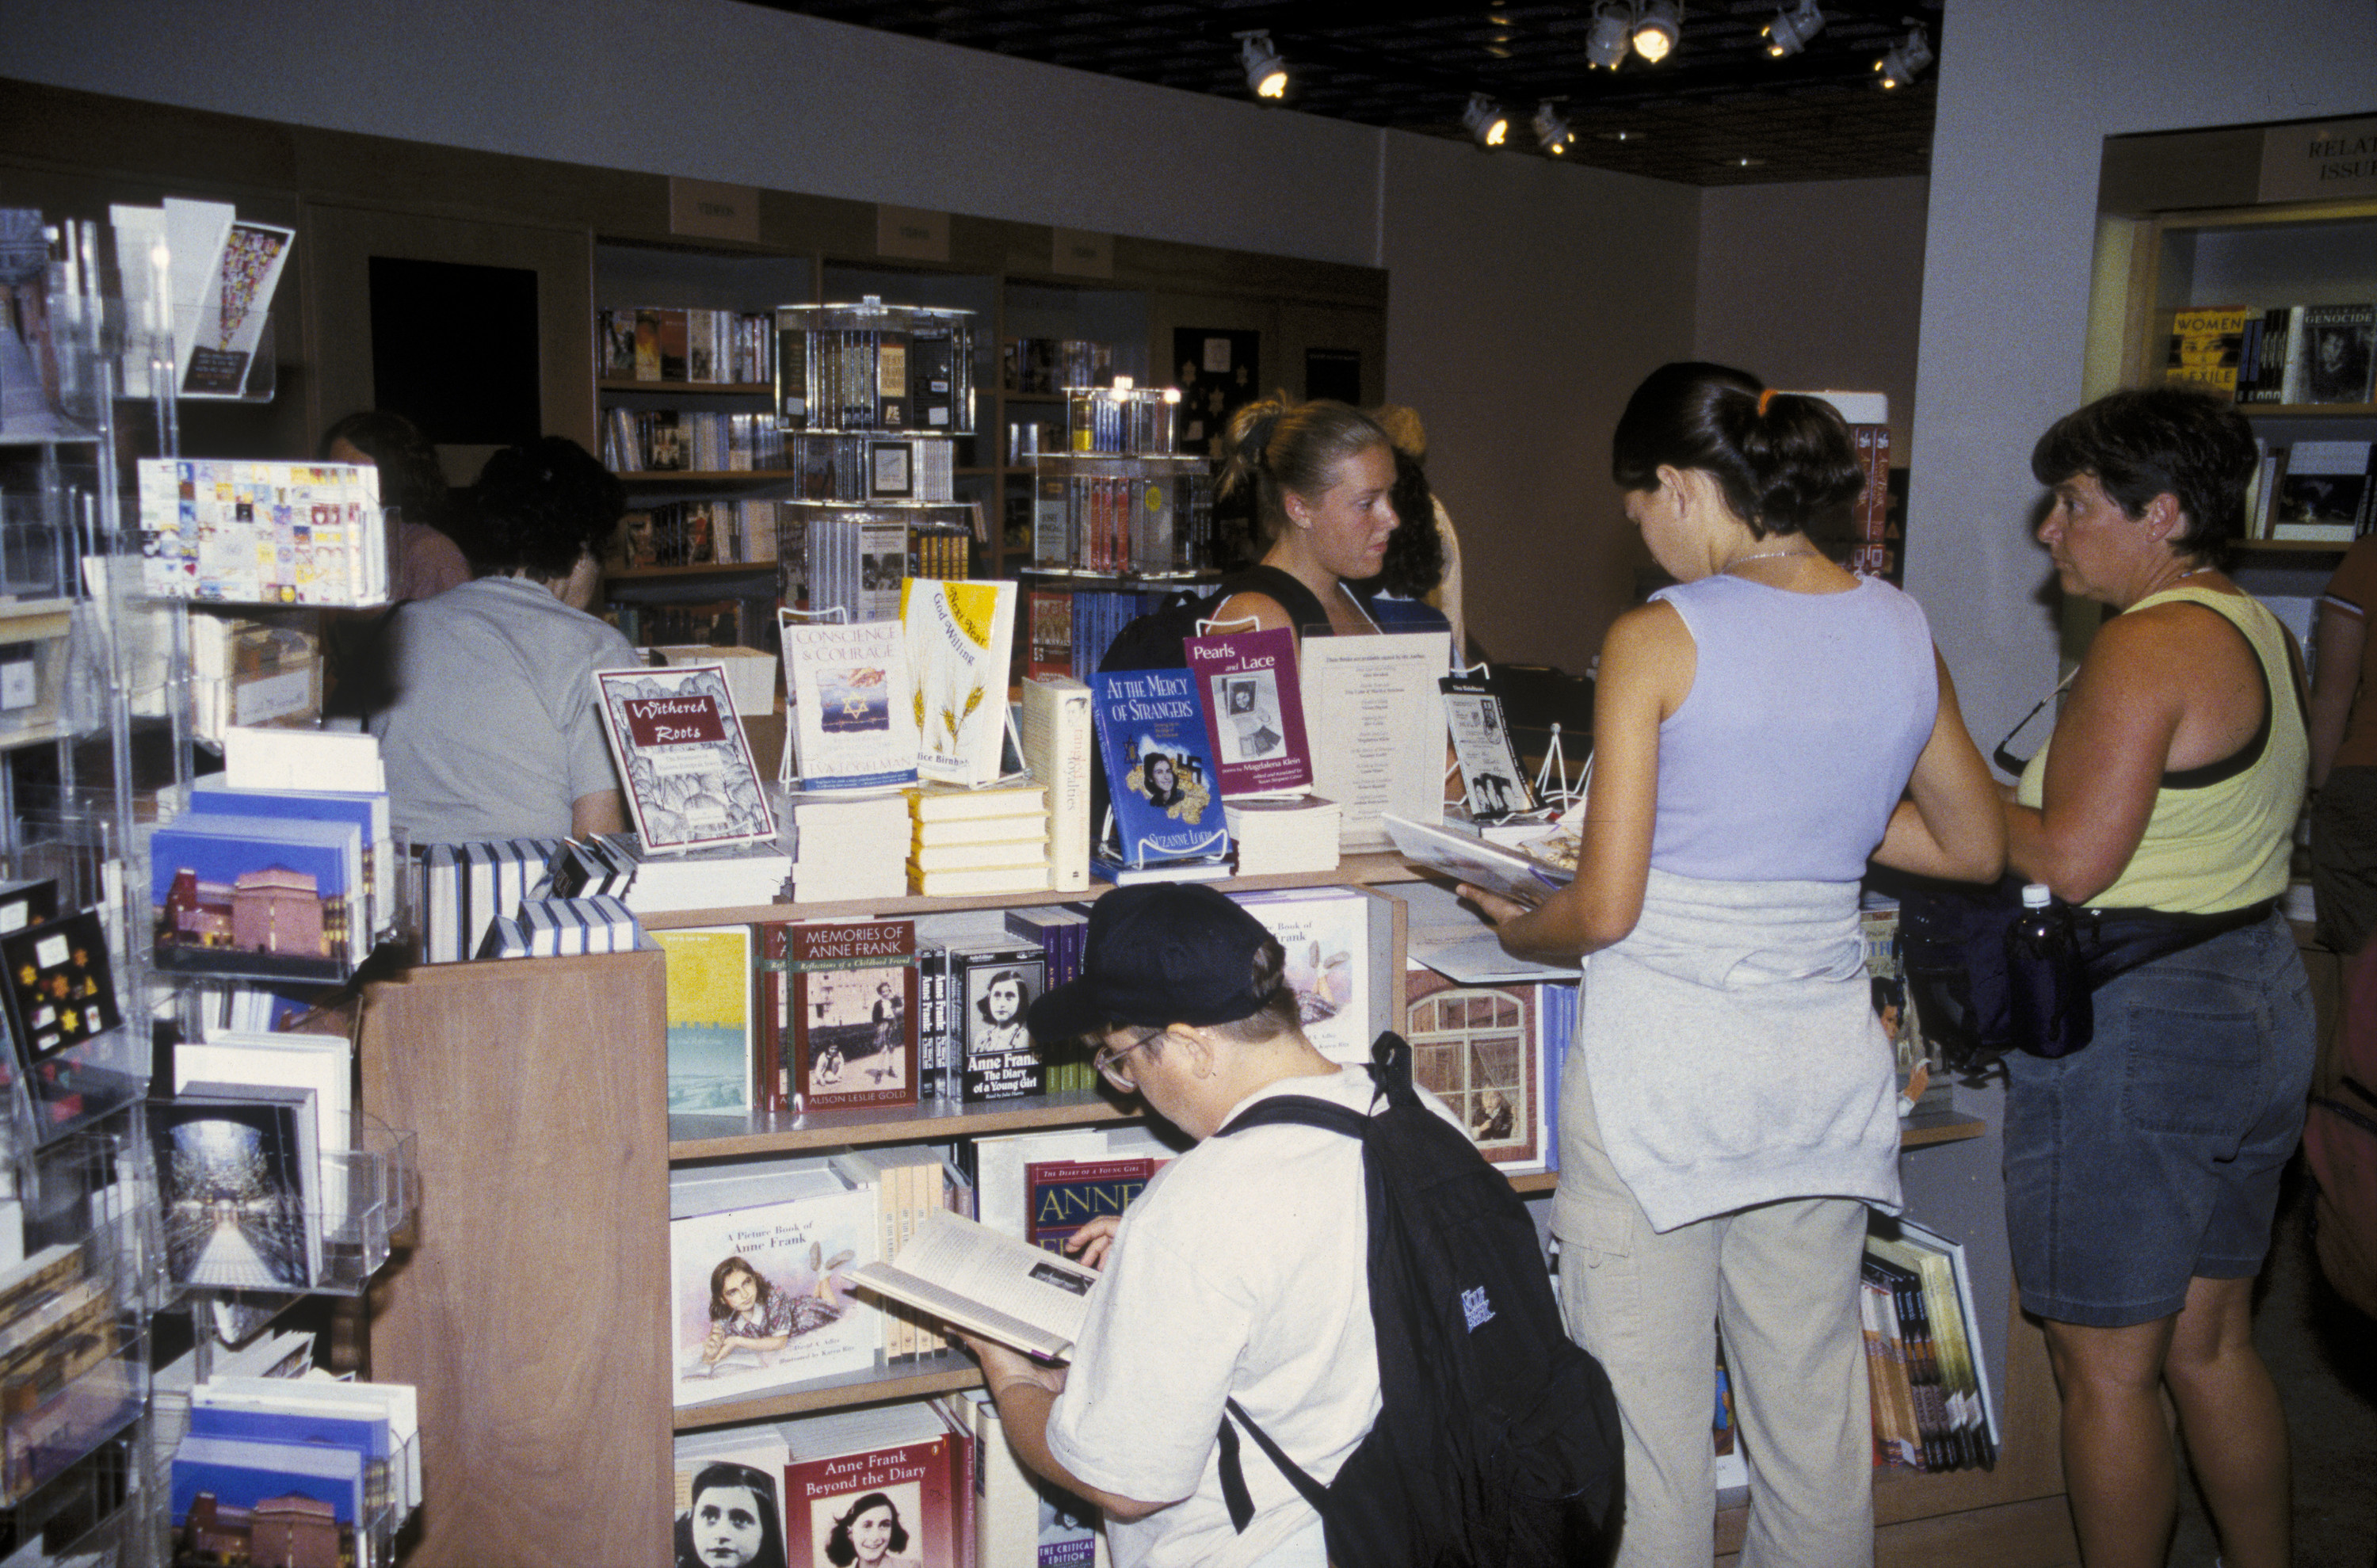 Visitors in the museum shop and bookstore on the first floor of the U.S. Holocaust Memorial Museum.